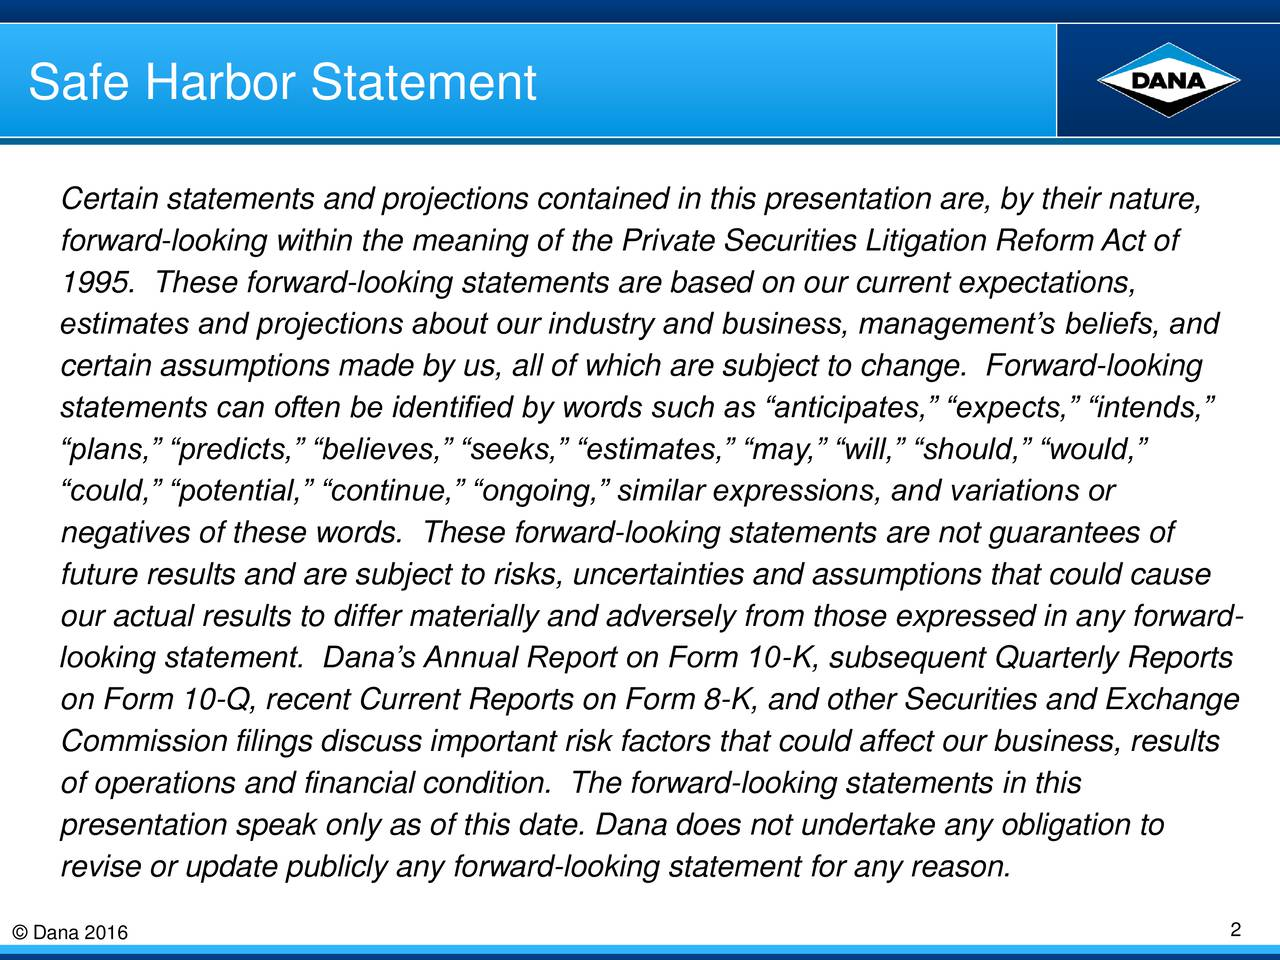 Certain statements and projections contained in this presentation are, by their nature, forward-looking within the meaning of the Private Securities Litigation Reform Act of 1995. These forward-looking statements are based on our current expectations, estimates and projections about our industry and business, managements beliefs, and certain assumptions made by us, all of which are subject to change. Forward-looking statements can often be identified by words such as anticipates, expects, intends, plans, predicts, believes, seeks, estimates, may, will, should, would, could, potential, continue, ongoing, similar expressions, and variations or negatives of these words. These forward-looking statements are not guarantees of future results and are subject to risks, uncertainties and assumptions that could cause our actual results to differ materially and adversely from those expressed in any forward- looking statement. Danas Annual Report on Form 10-K, subsequent Quarterly Reports on Form 10-Q, recent Current Reports on Form 8-K, and other Securities and Exchange Commission filings discuss important risk factors that could affect our business, results of operations and financial condition. The forward-looking statements in this presentation speak only as of this date. Dana does not undertake any obligation to revise or update publicly any forward-looking statement for any reason. Dana 2016 2